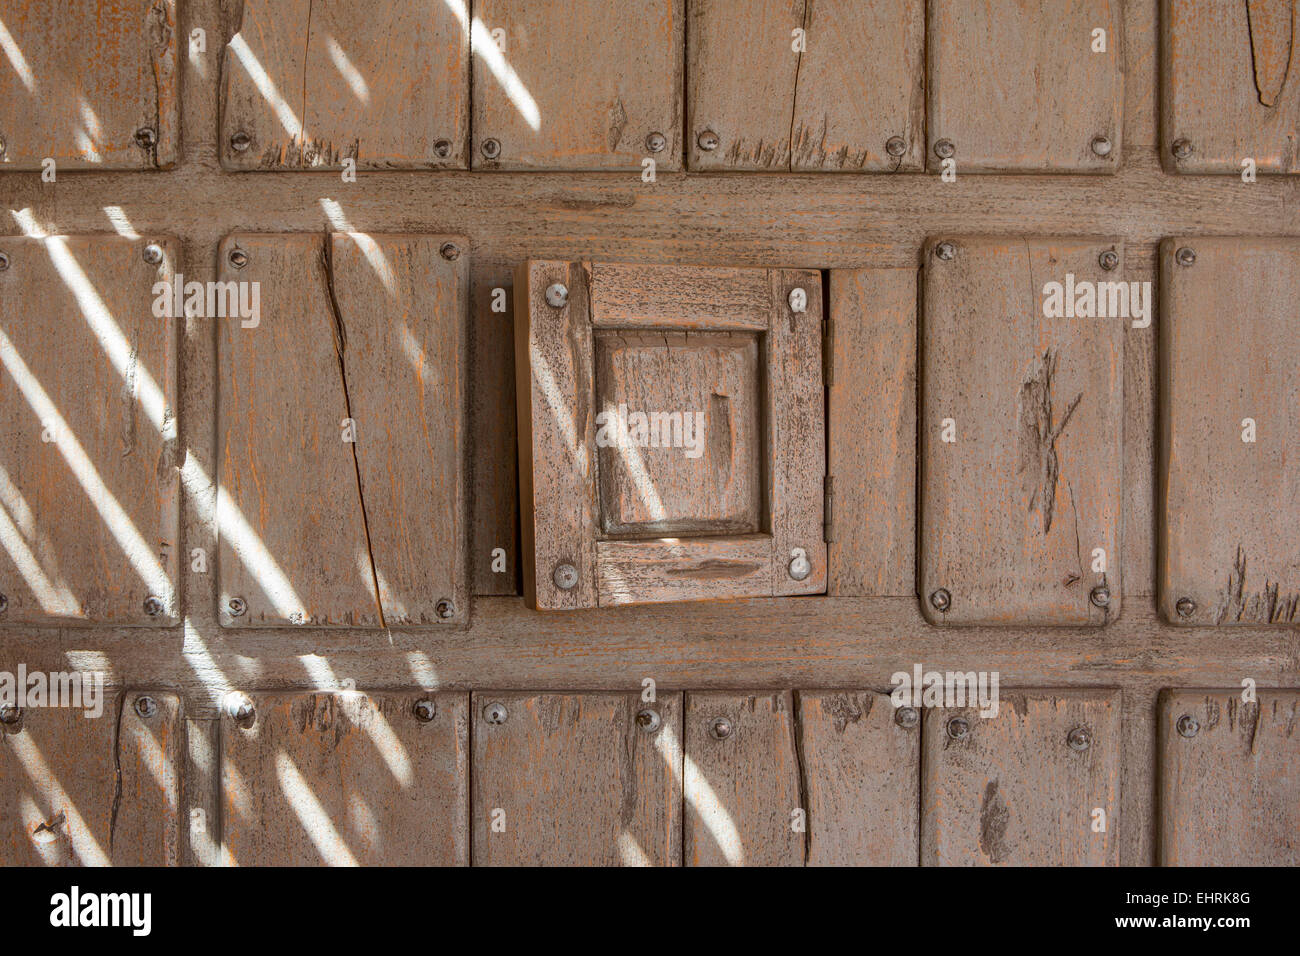 Doorway with an inspection hatch - Stock Image